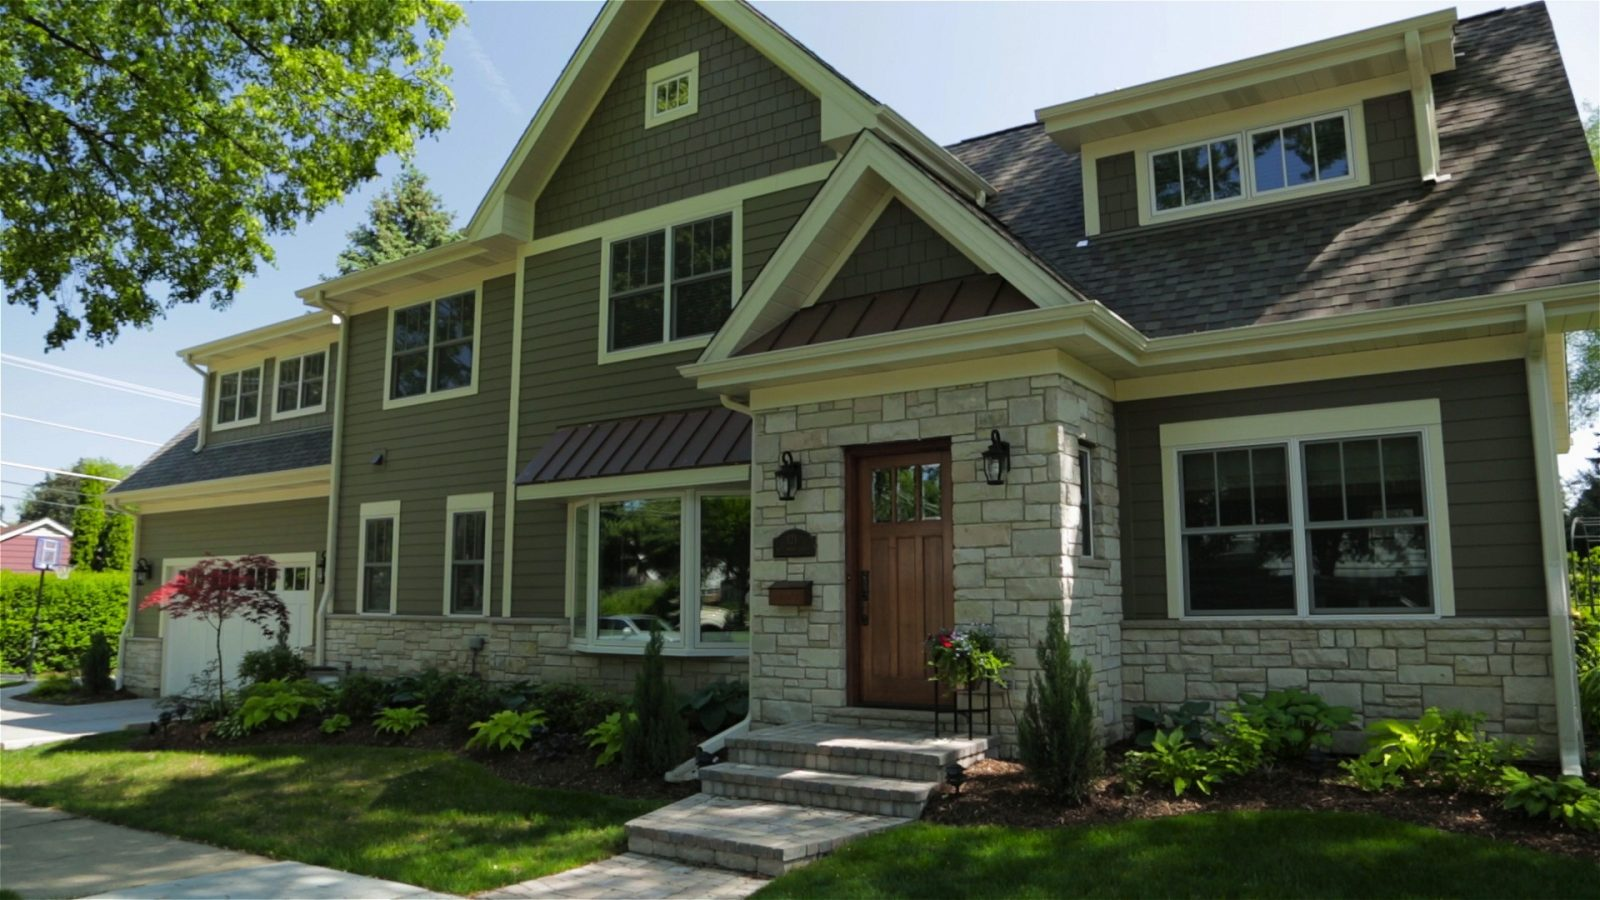 Fiber Cement Siding: Pros, Cons, and Best Brands | Siding